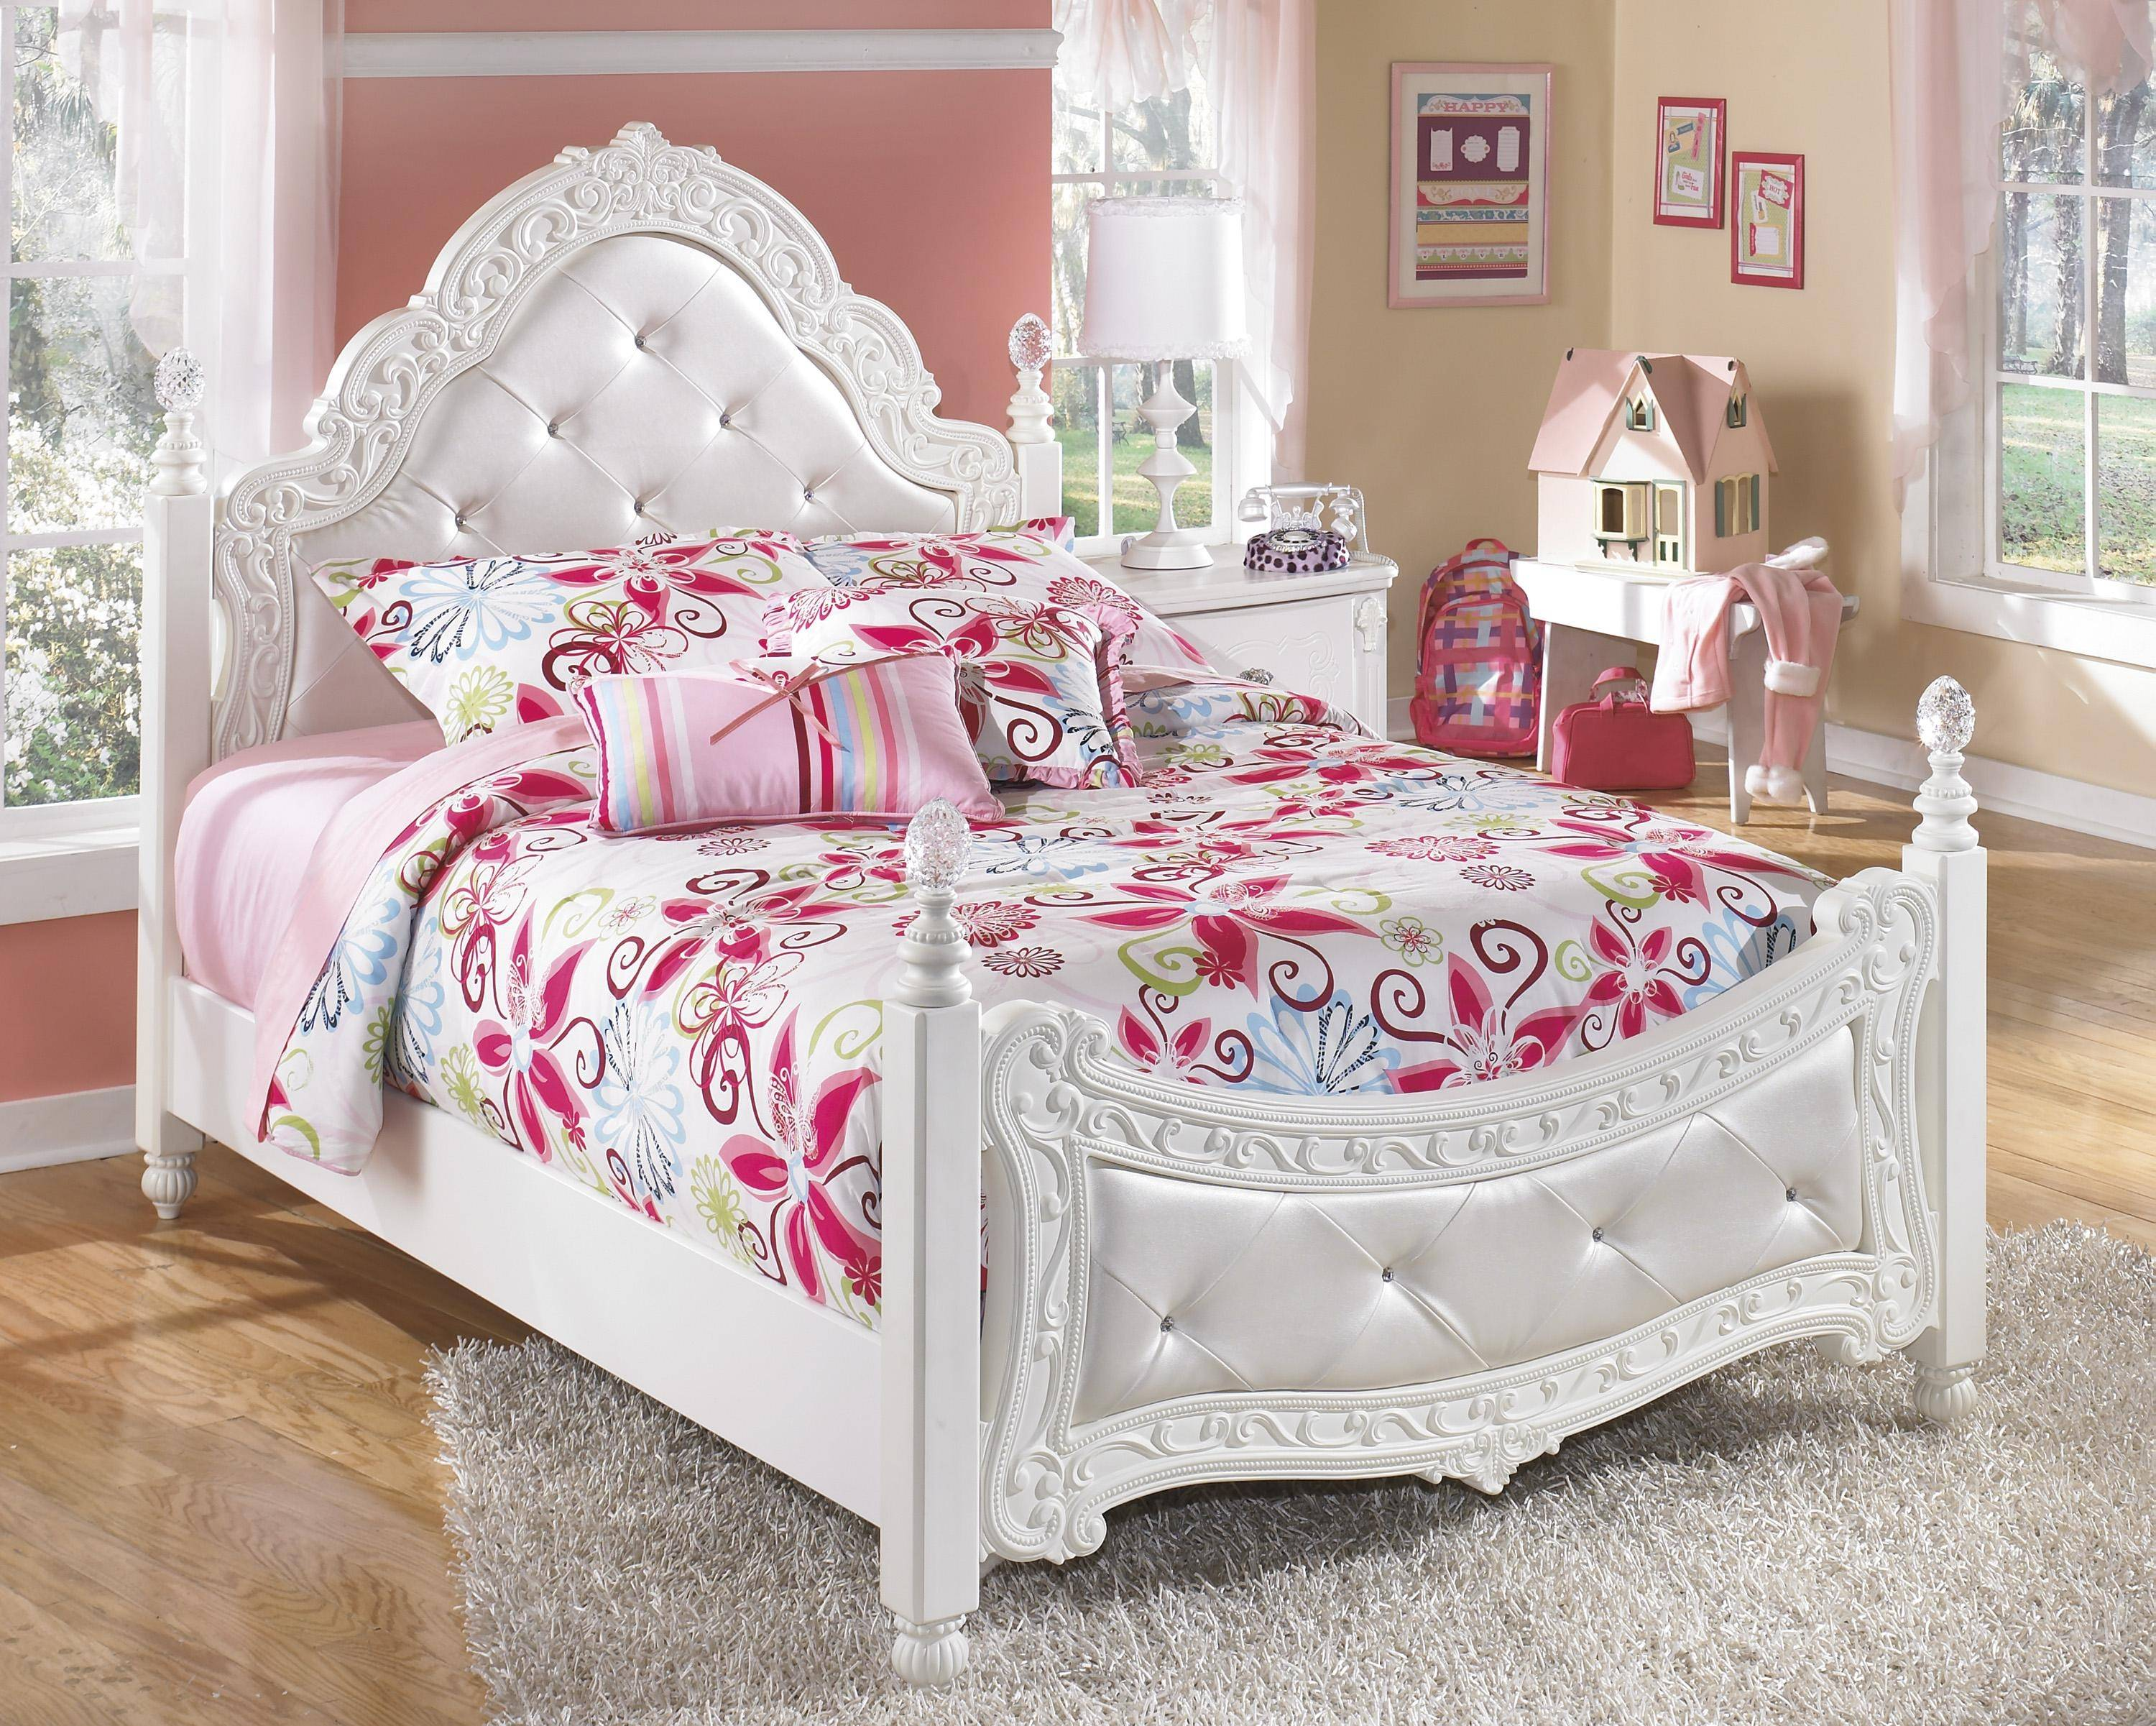 ashley exquisite b188y full size poster bedroom set 3pcs